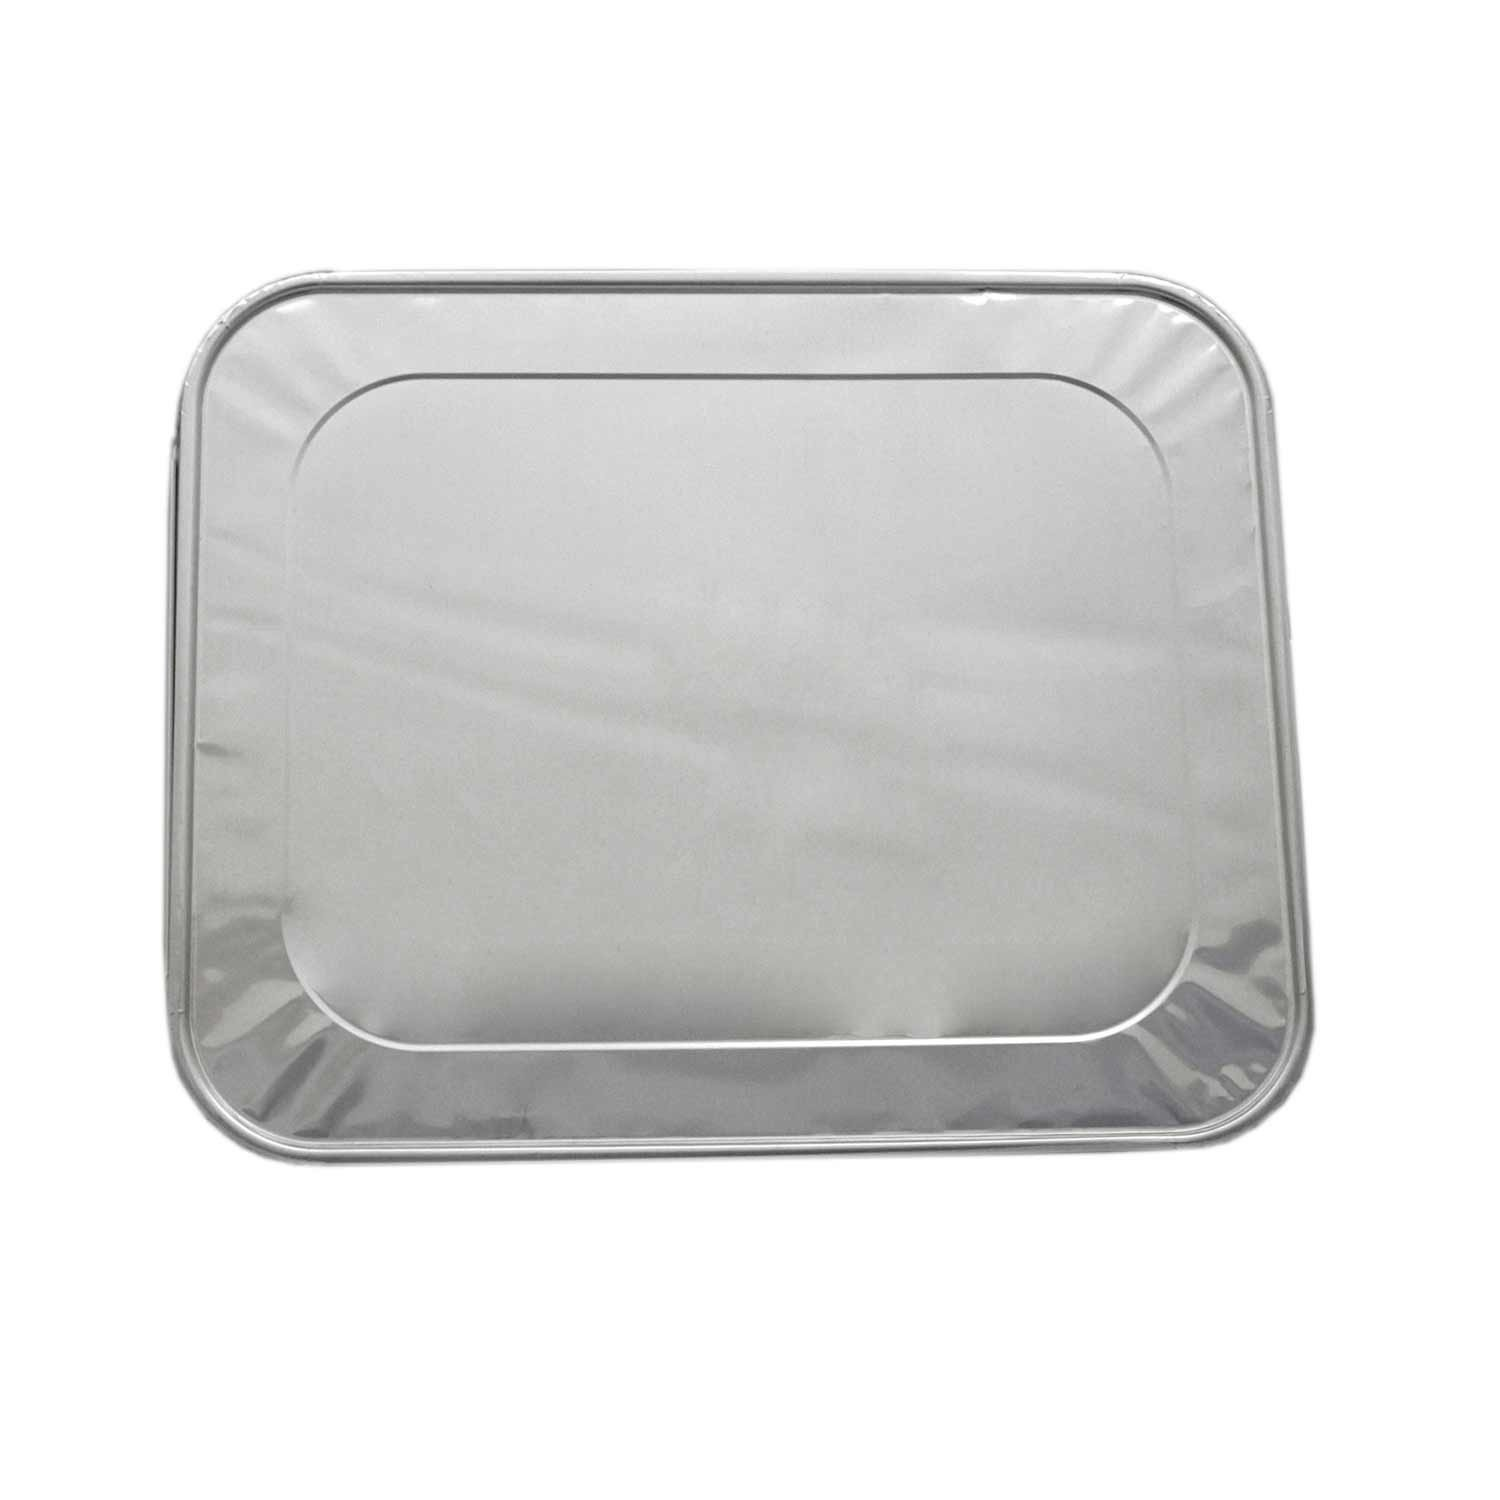 TigerChef Aluminum Half Size Foil Lids For Foil Pans - 5 pcs